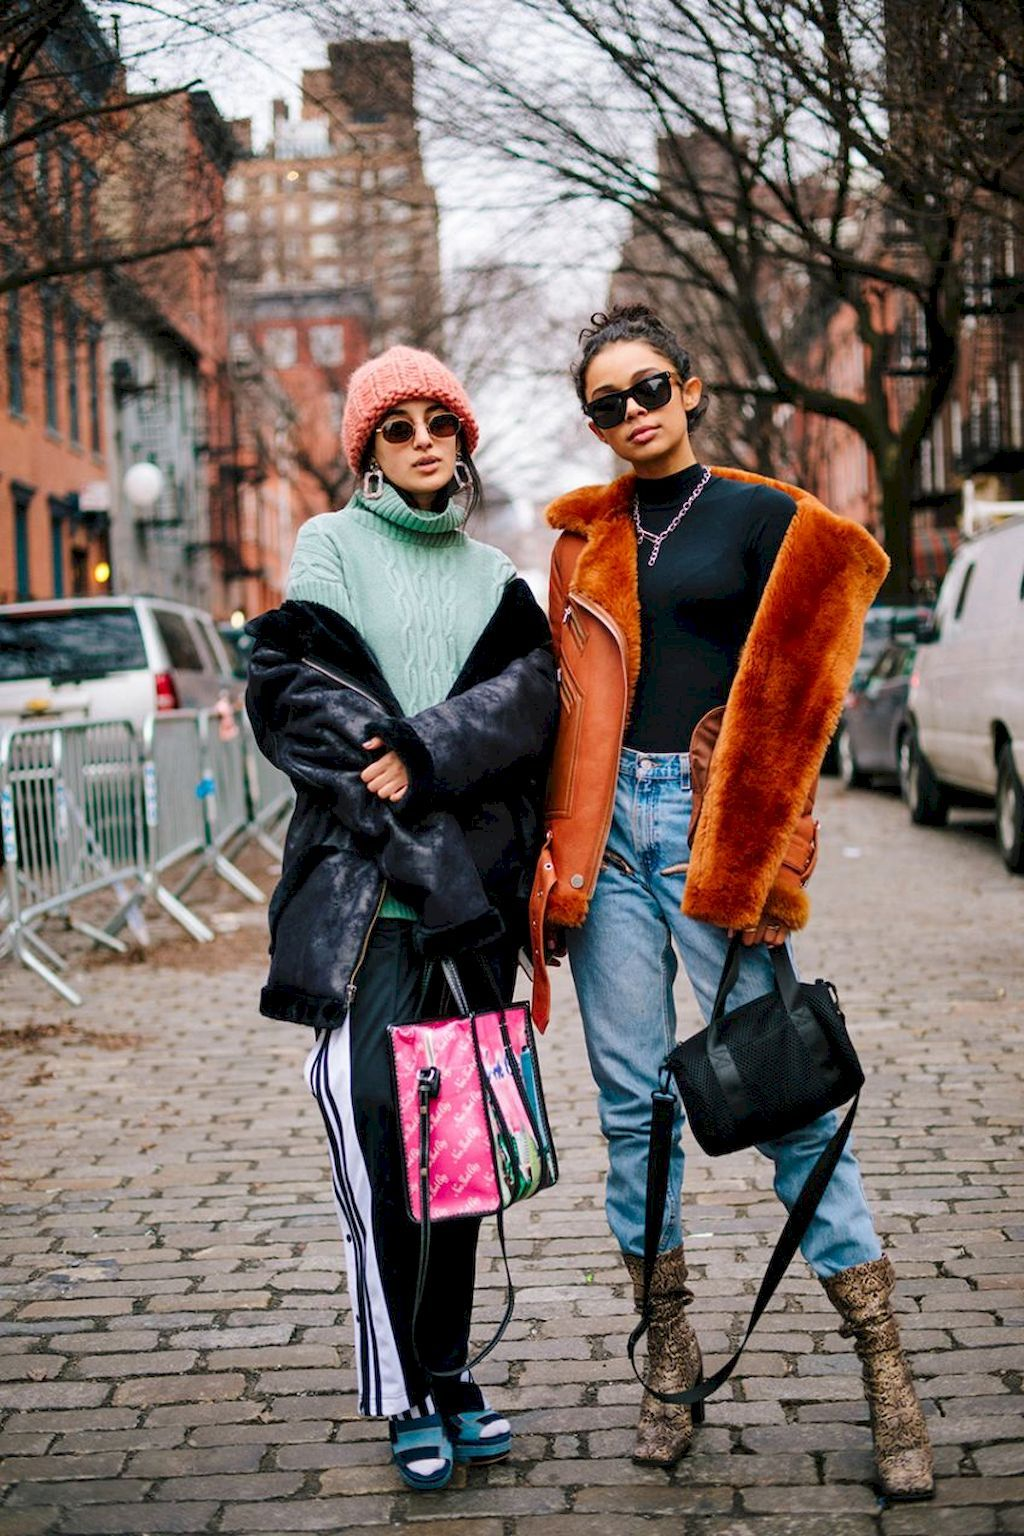 39 Cool Teen Fashion Looks For Boys In 2018: 39 Cool Way To Wear Street Style For Women